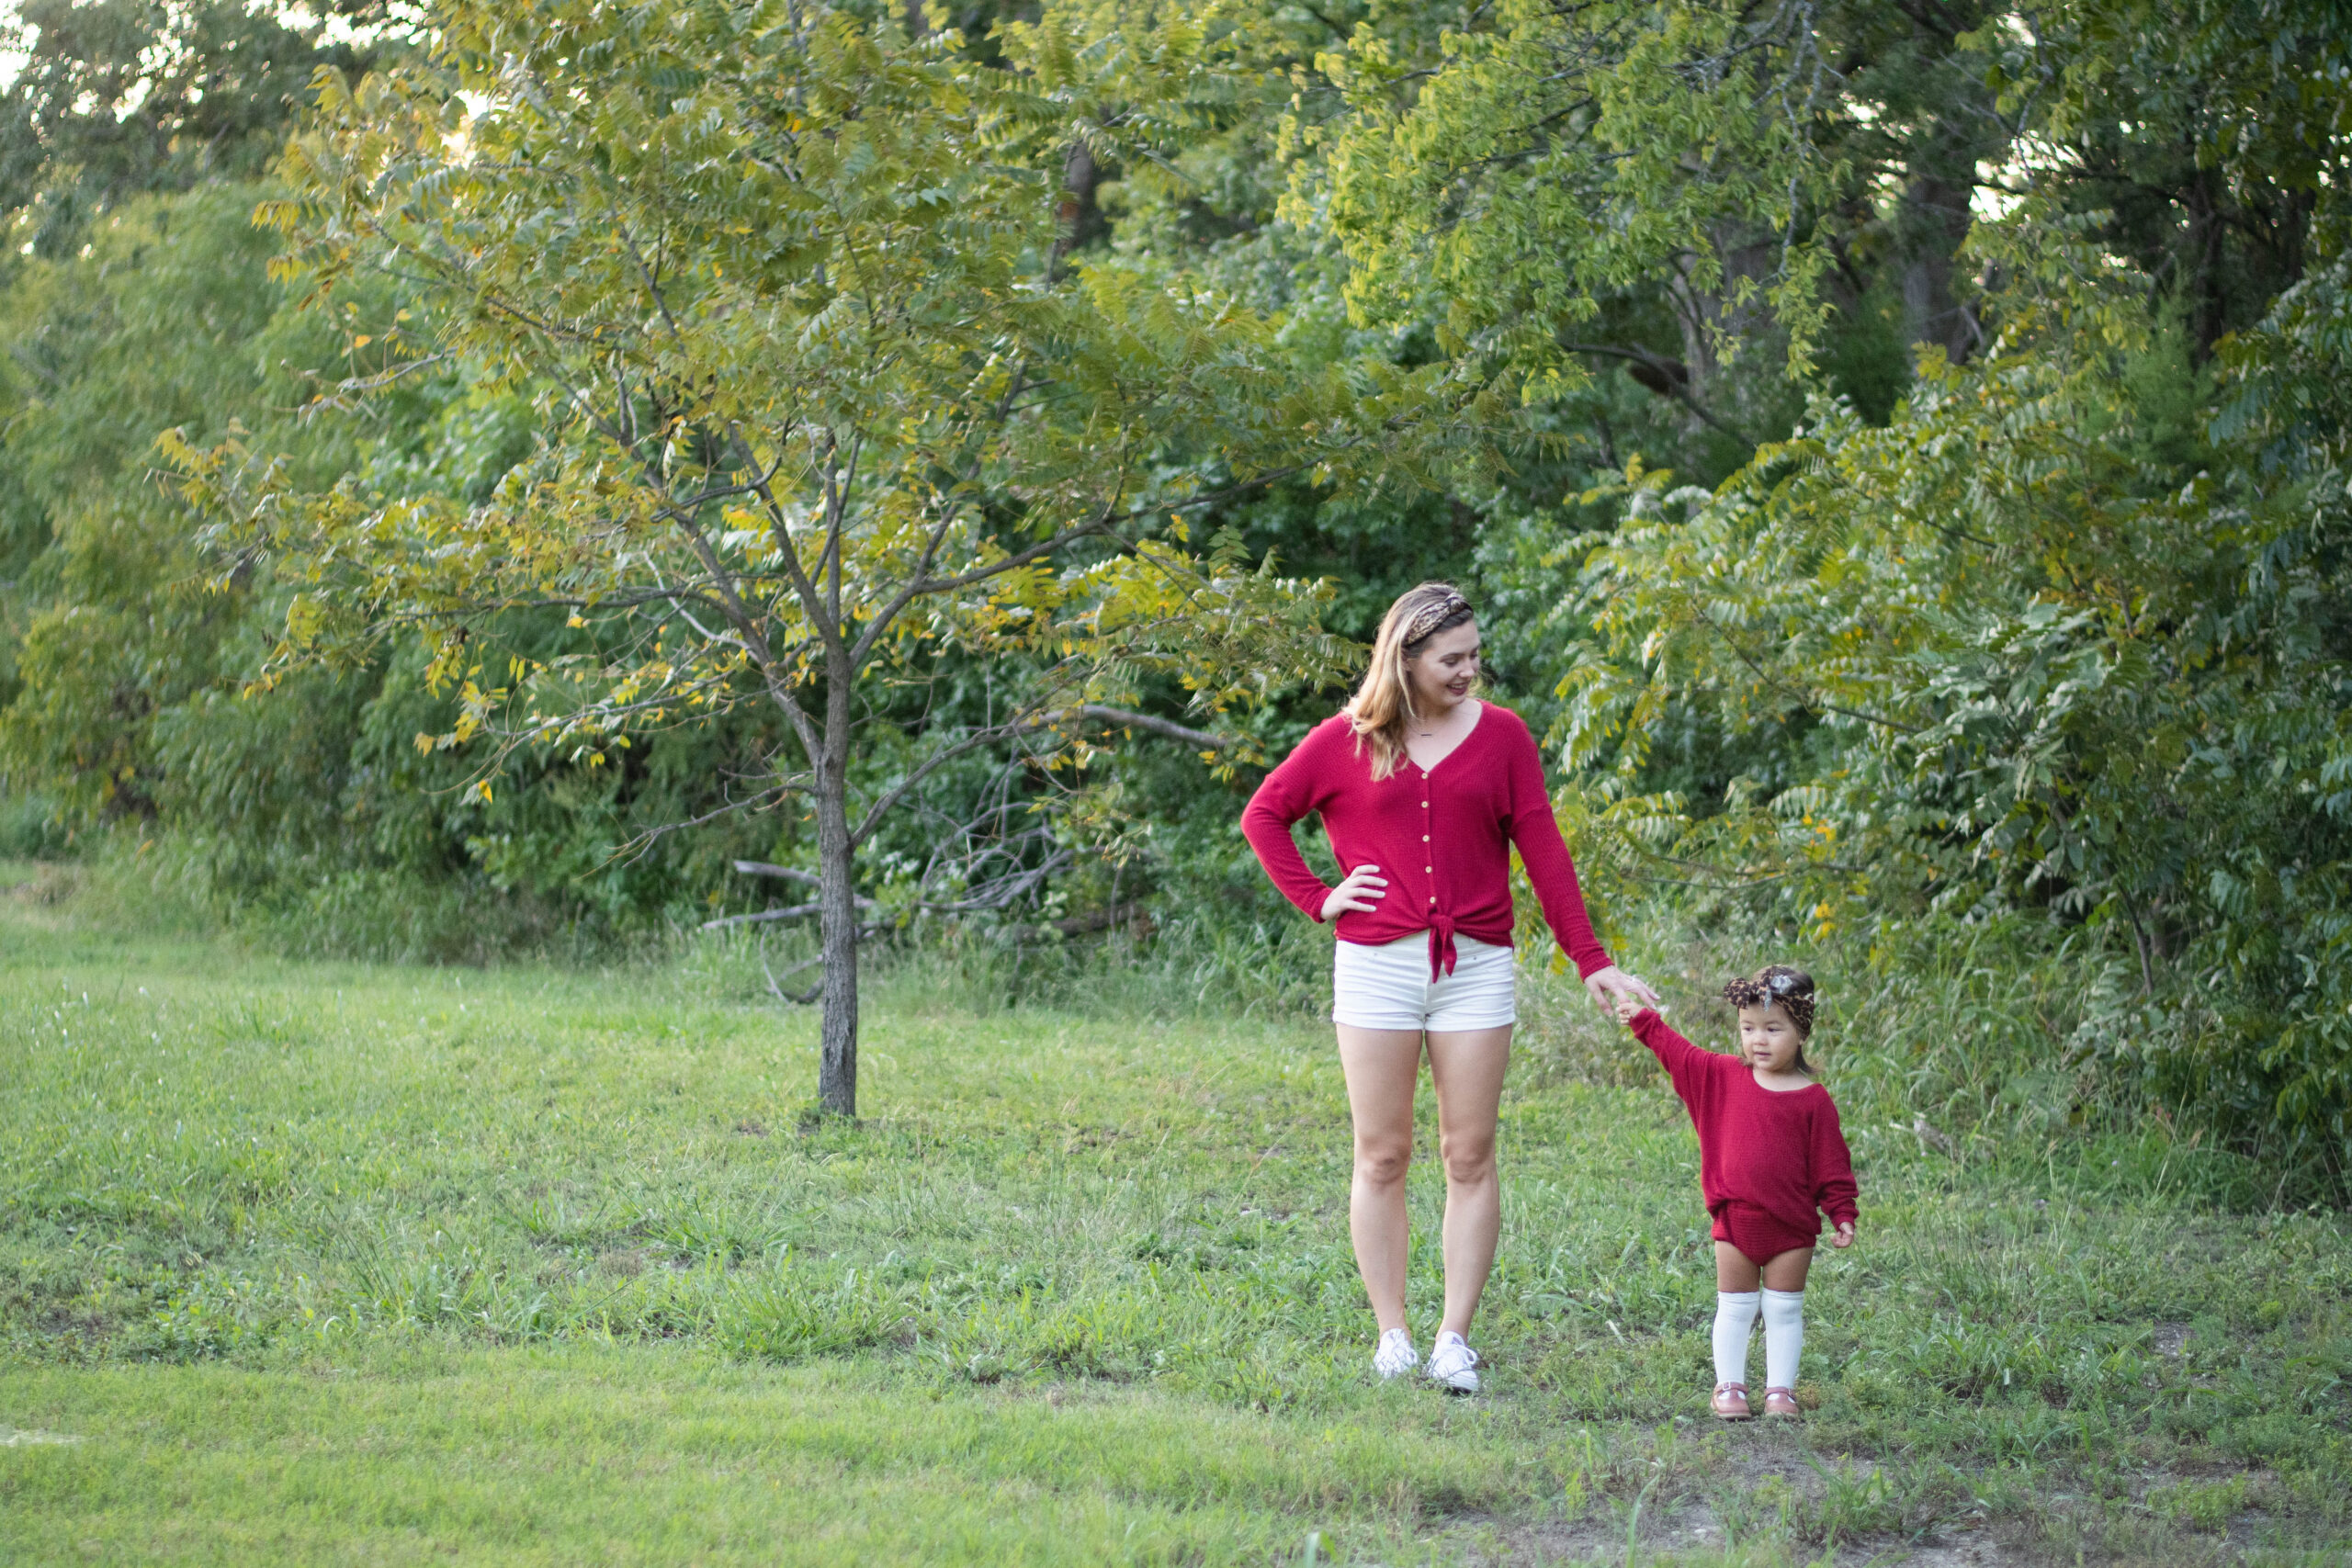 Elizabeth and her daughter stand in a field in front of some green trees with just a hint of autumn coloring on the tips of their leaves. Elizabeth wears a top that she has sewn, and her daughter wears a matching outfit, sewn by Mama, as they hold hands.